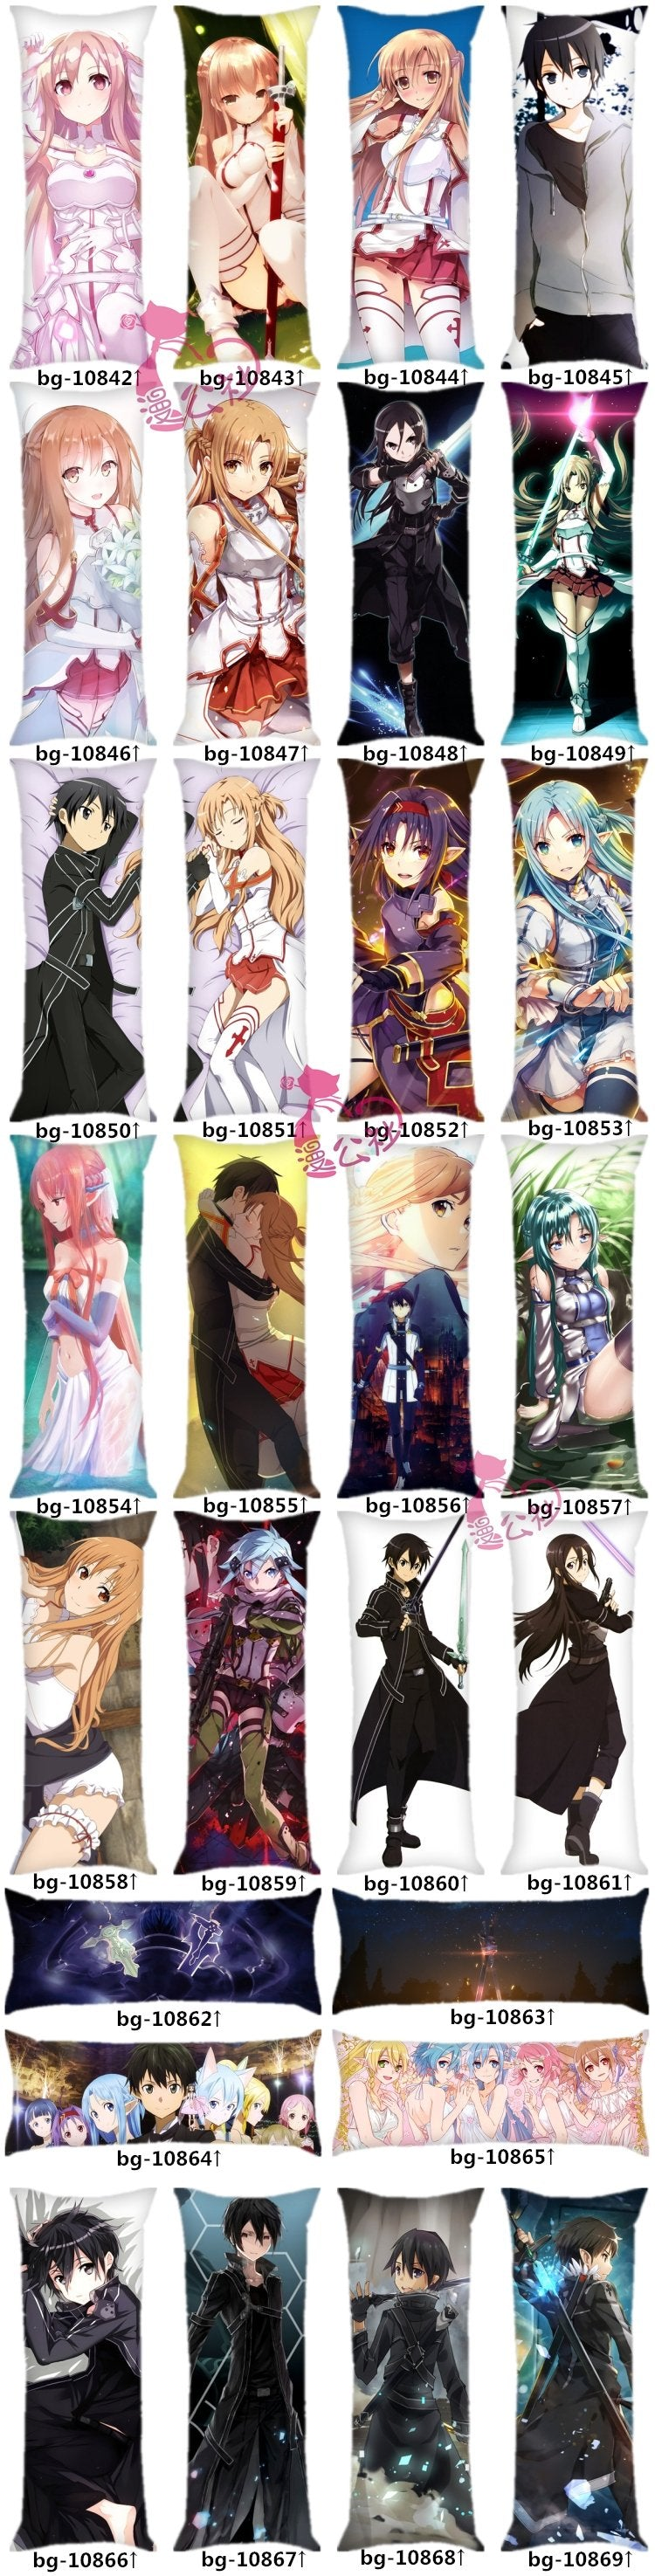 Sword Art Online Body Pillow Designs to Choose